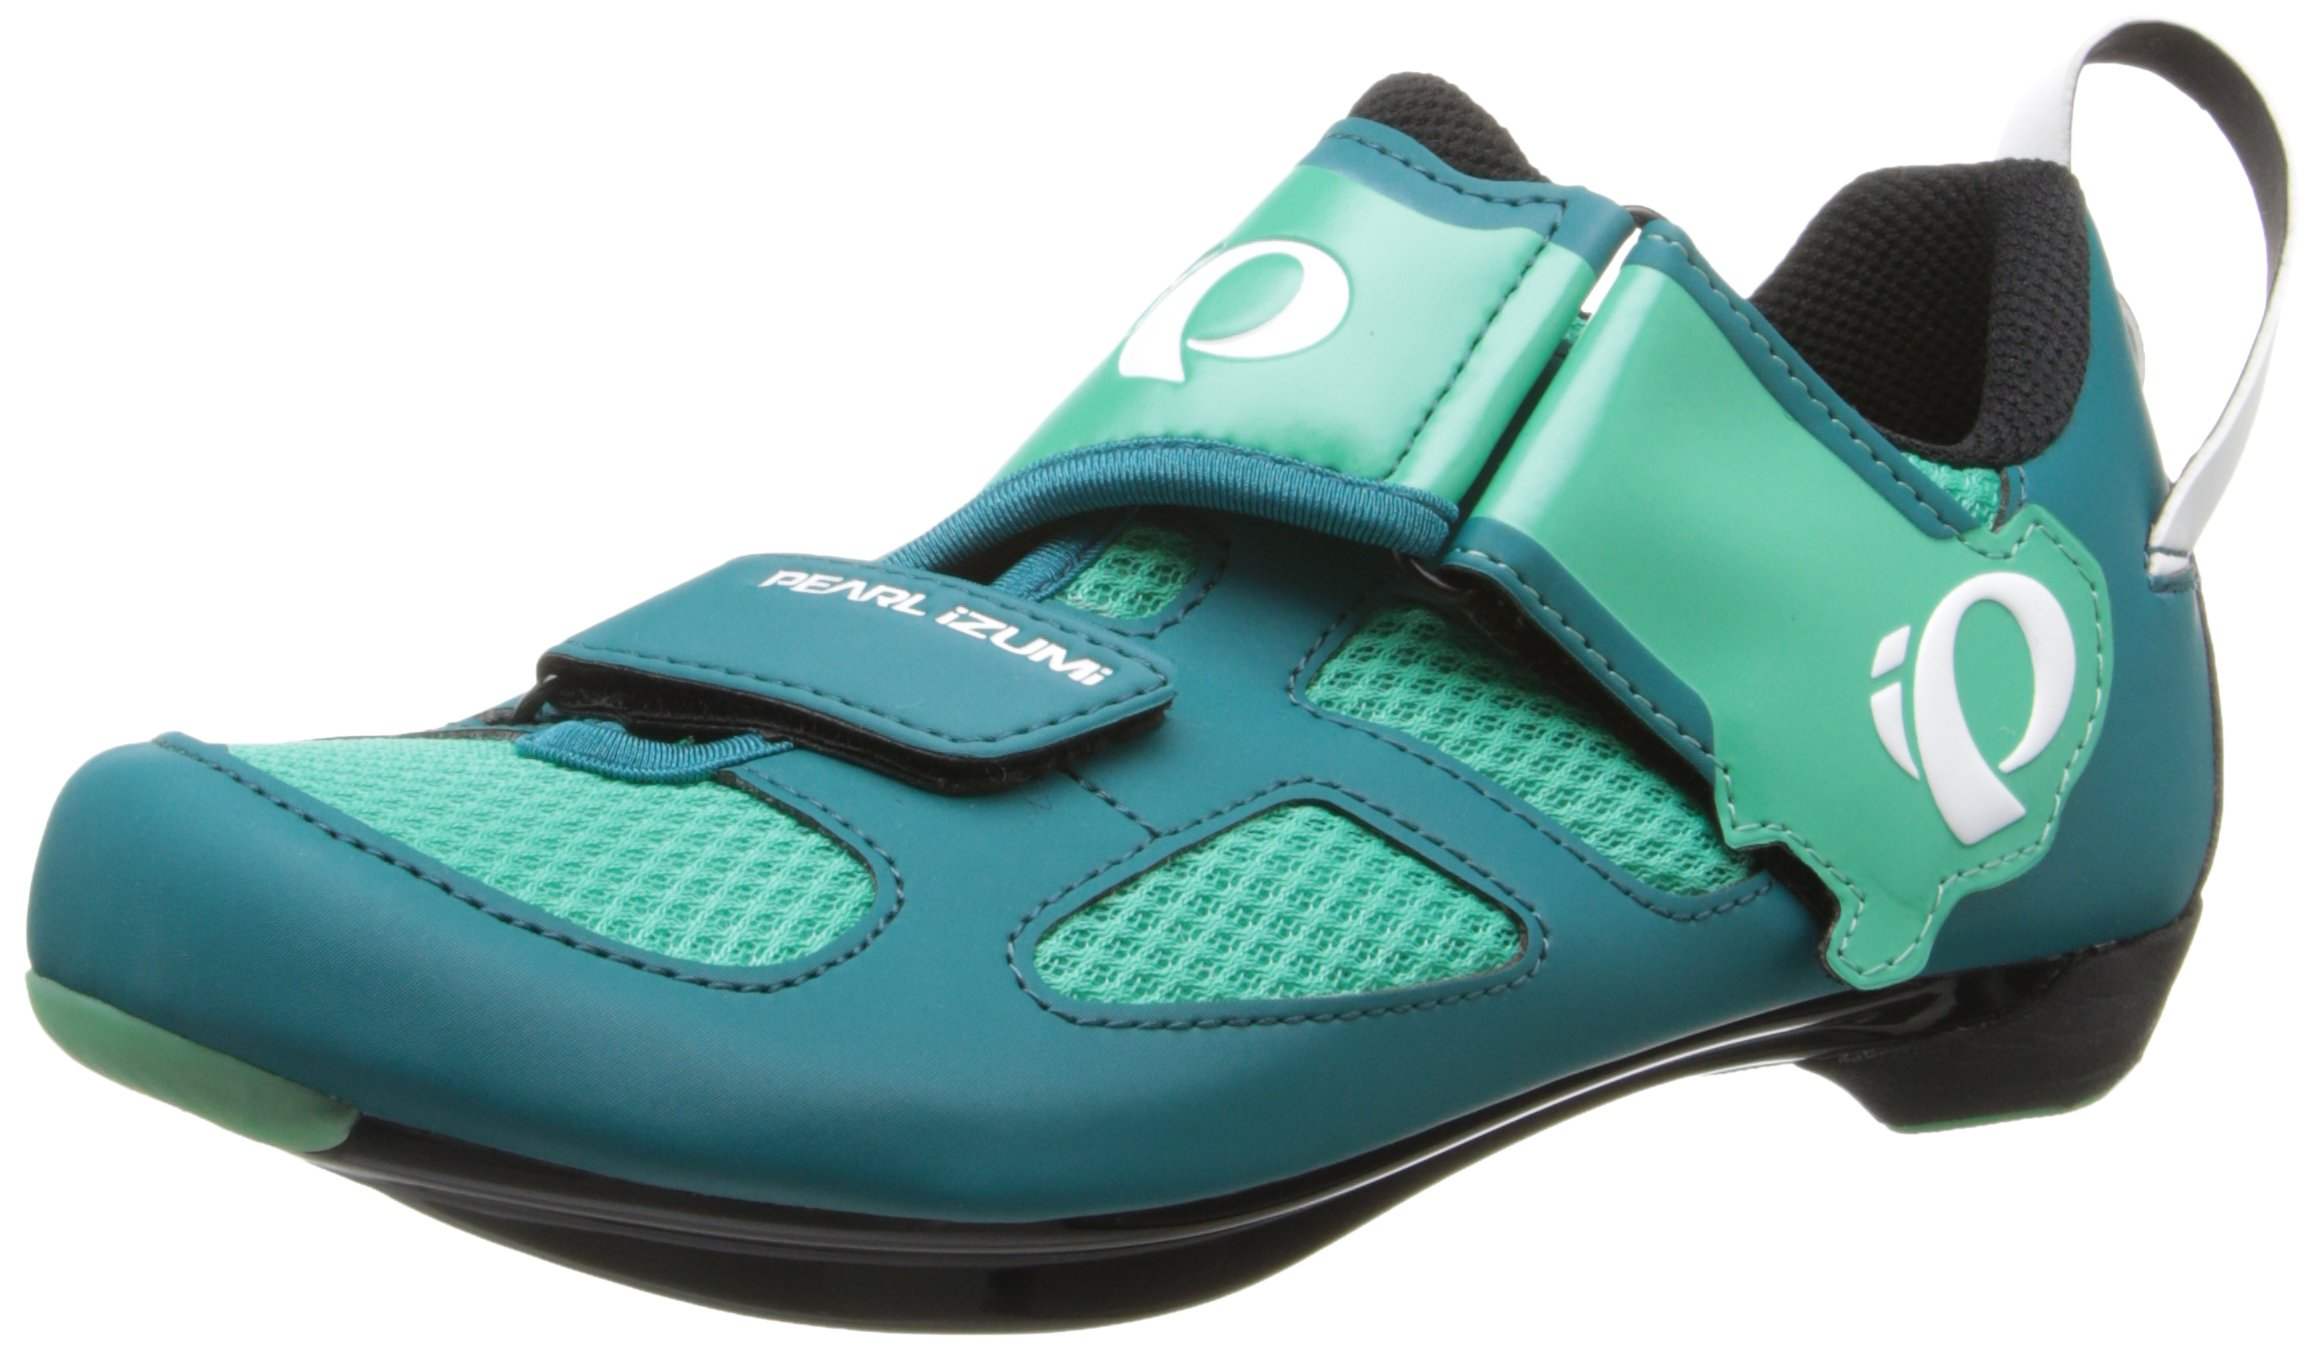 Pearl iZUMi Women's W Tri Fly V Dl/g Tri Cycling Shoe, Deep Lake/Gumdrop, 40.5 EU/8.8 B US